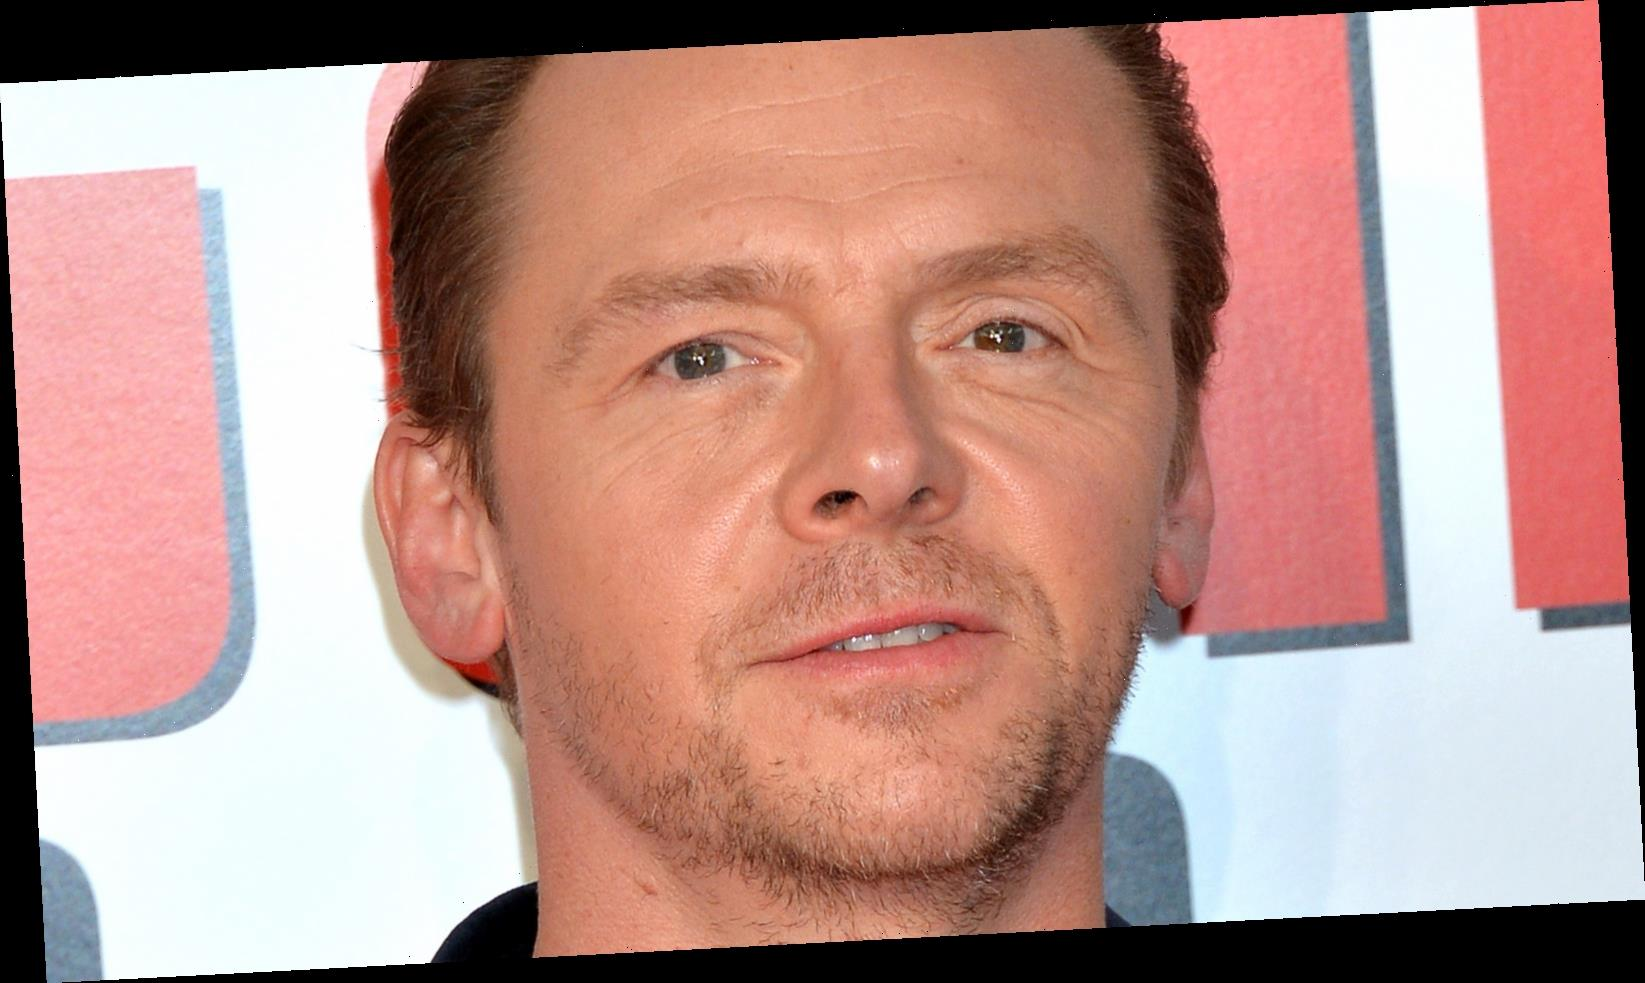 The Real Reason Simon Pegg Was Temporarily Banned From Driving